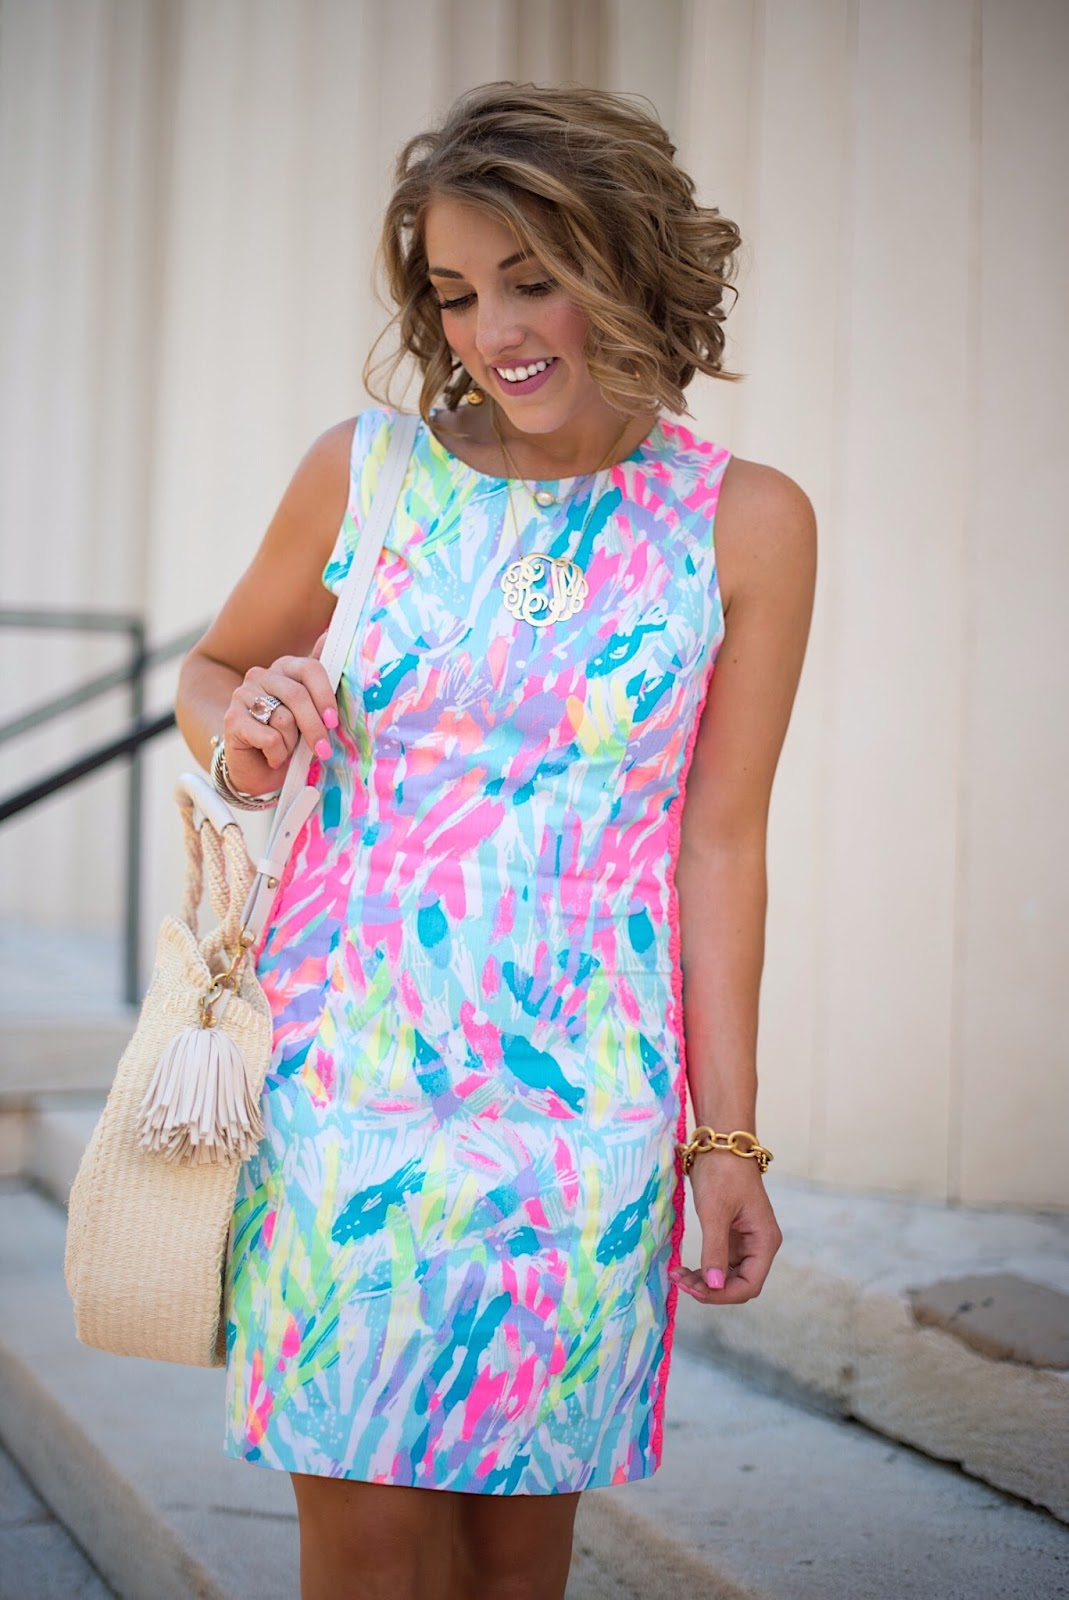 Lilly Pulitzer Mila Shift Dress - Click through to see more on Something Delightful Blog!